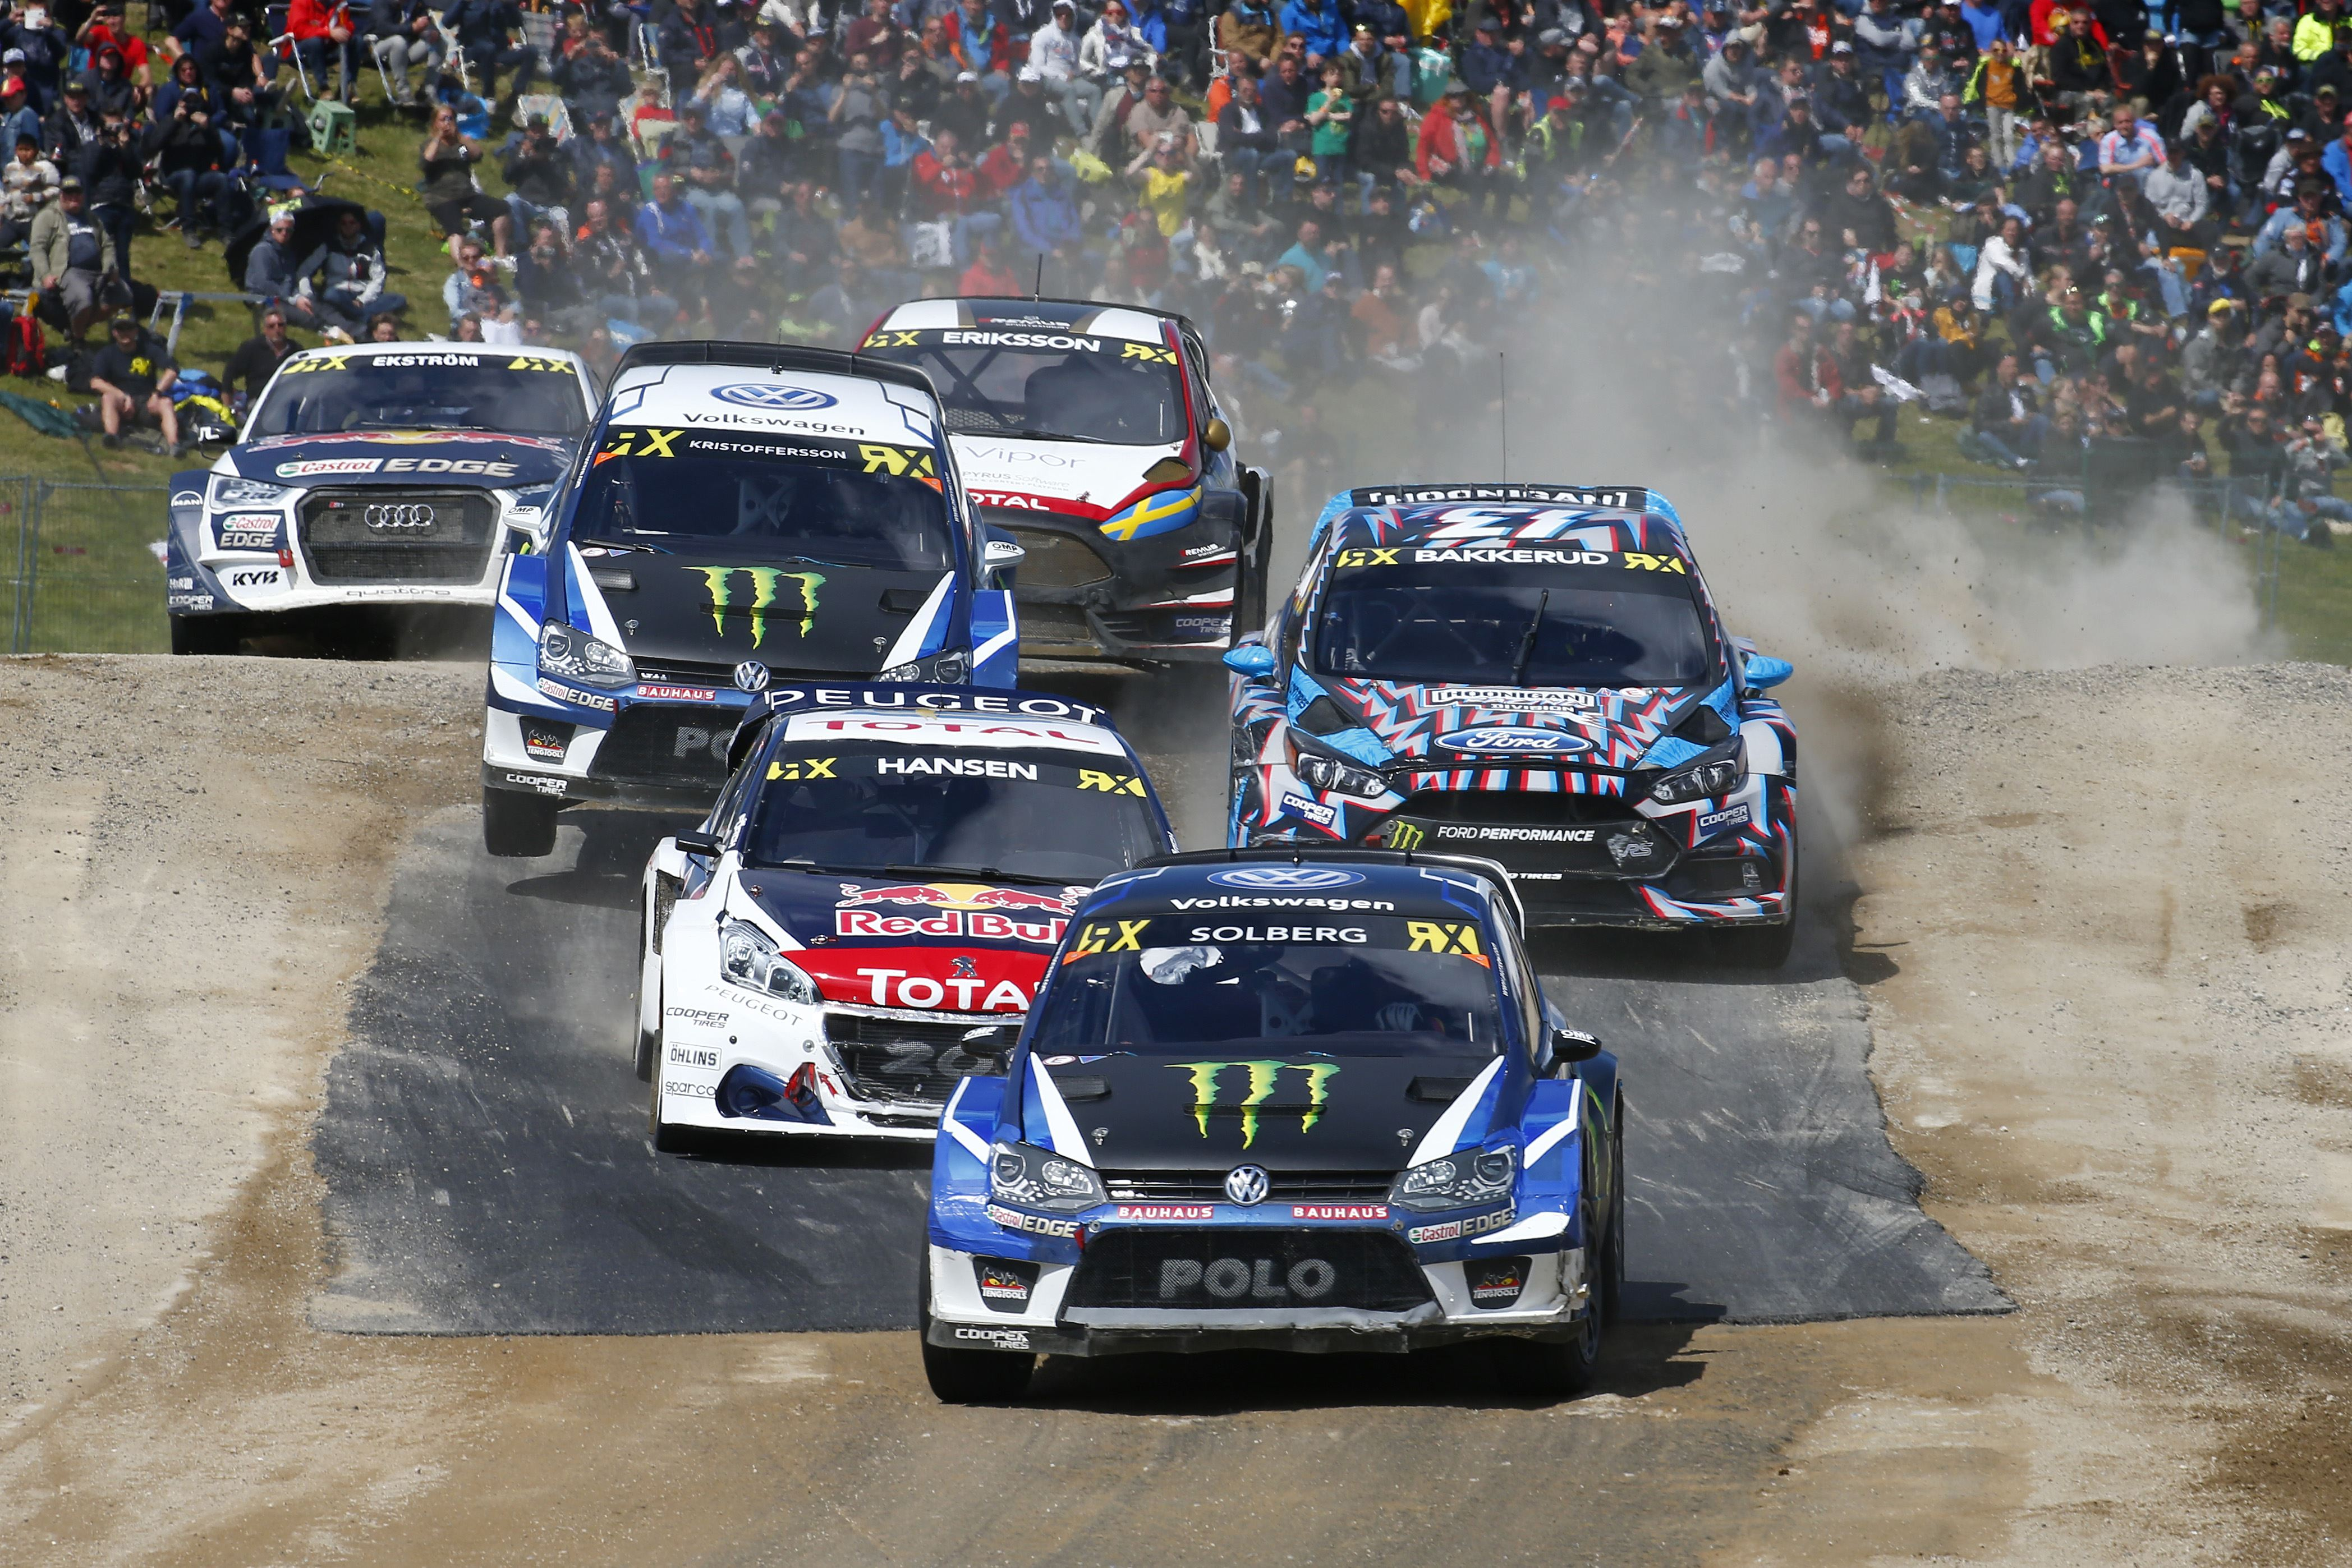 15 cars ready for World RX – Racing24-7.net